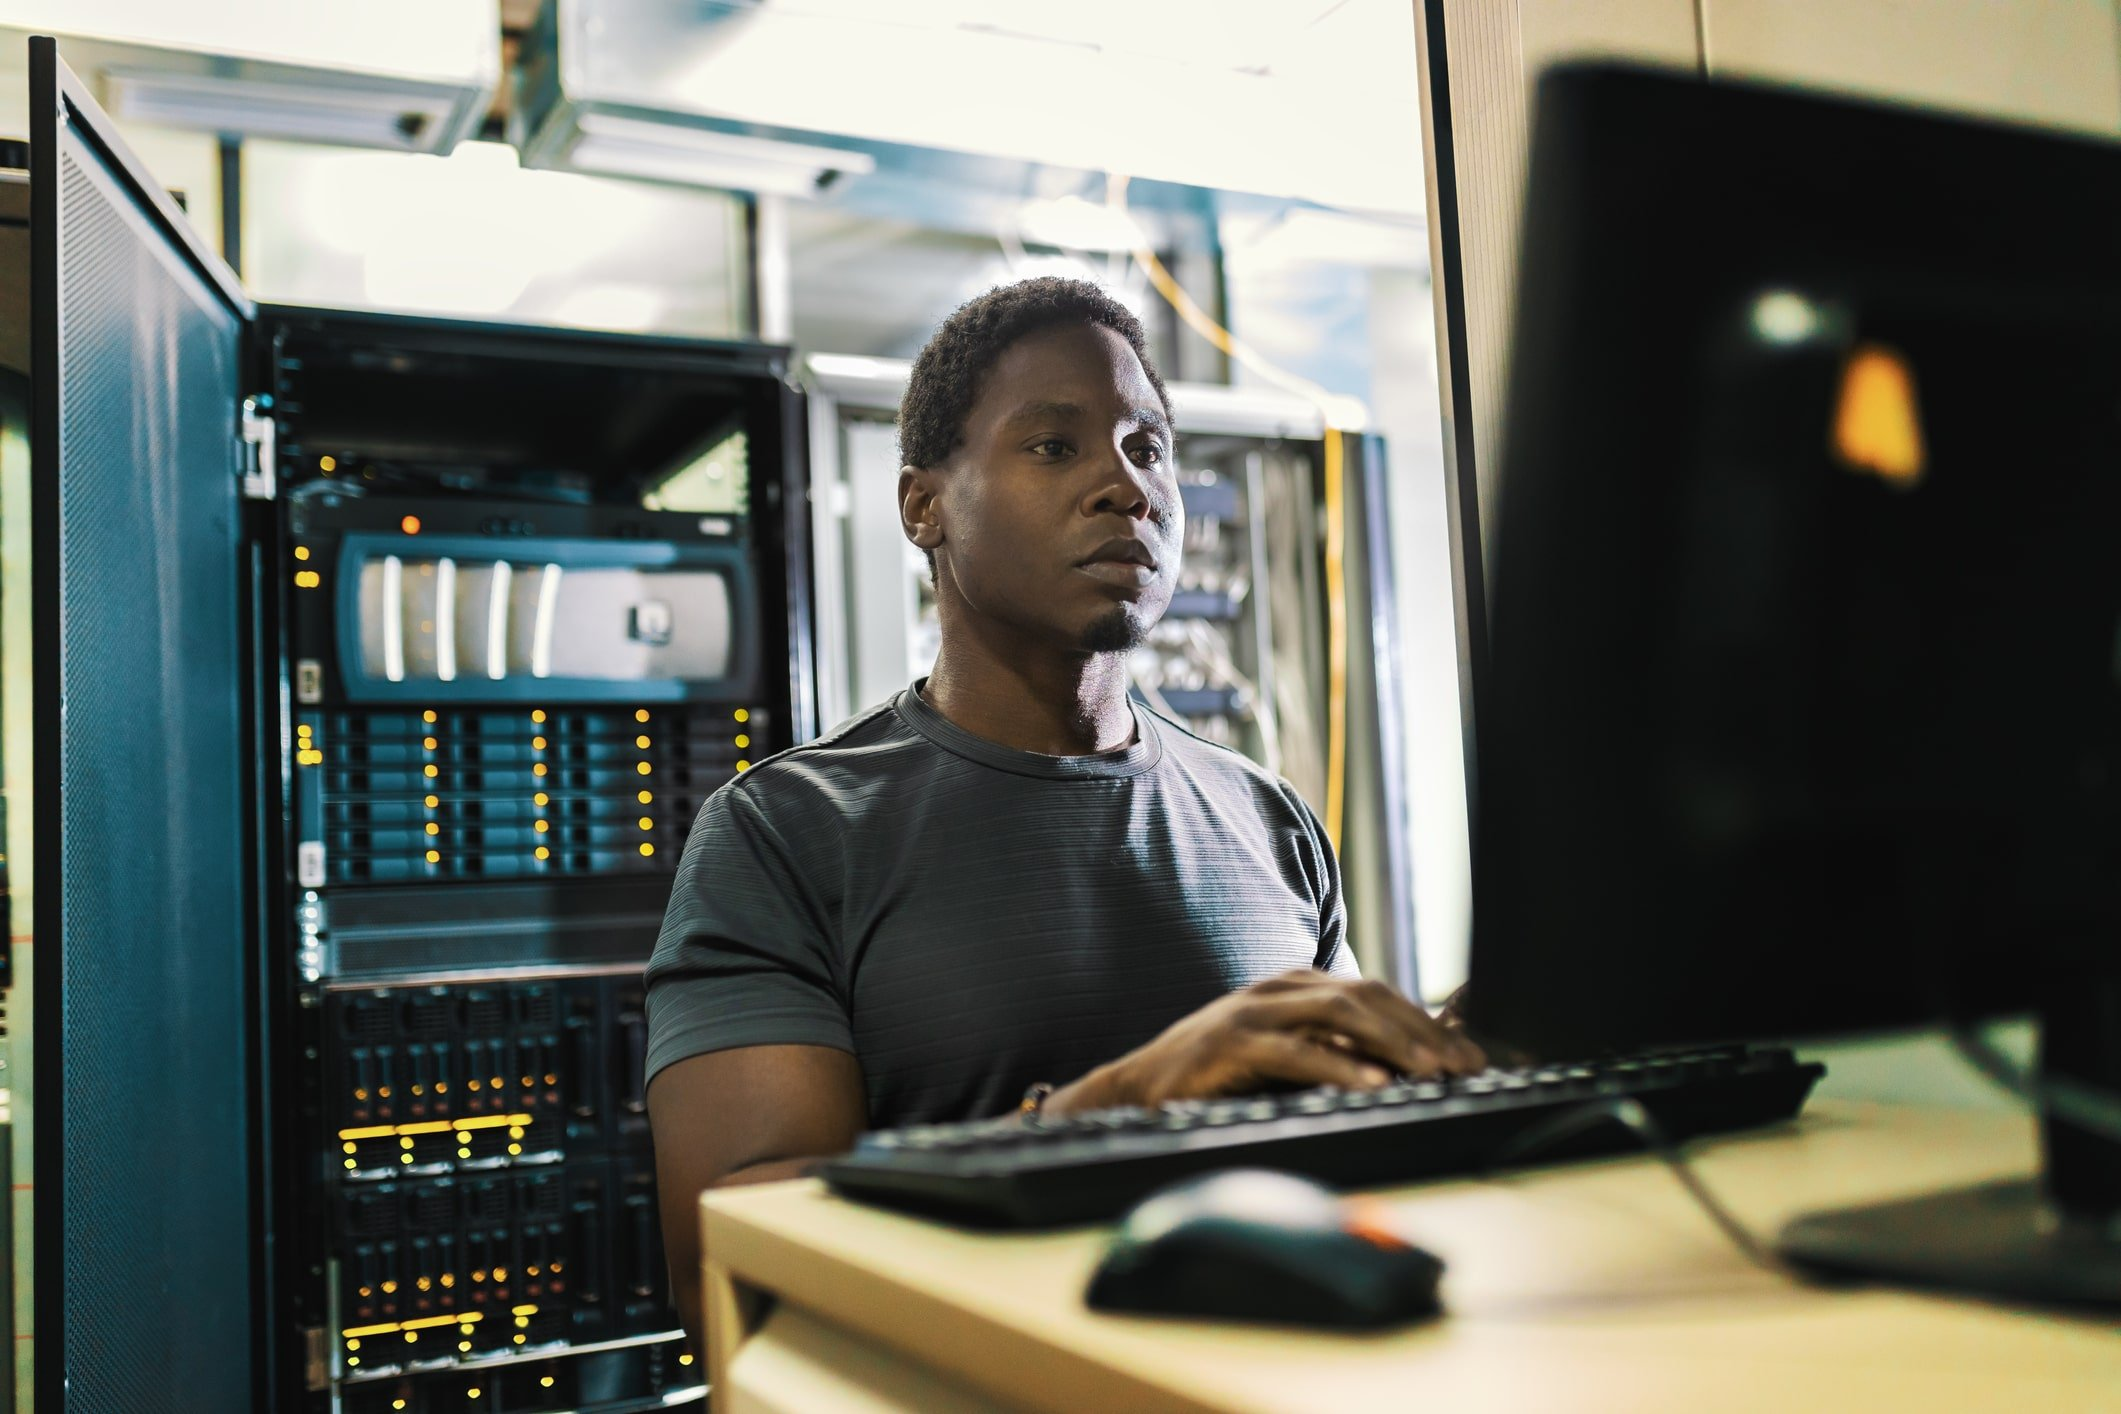 male network administrator working on computer